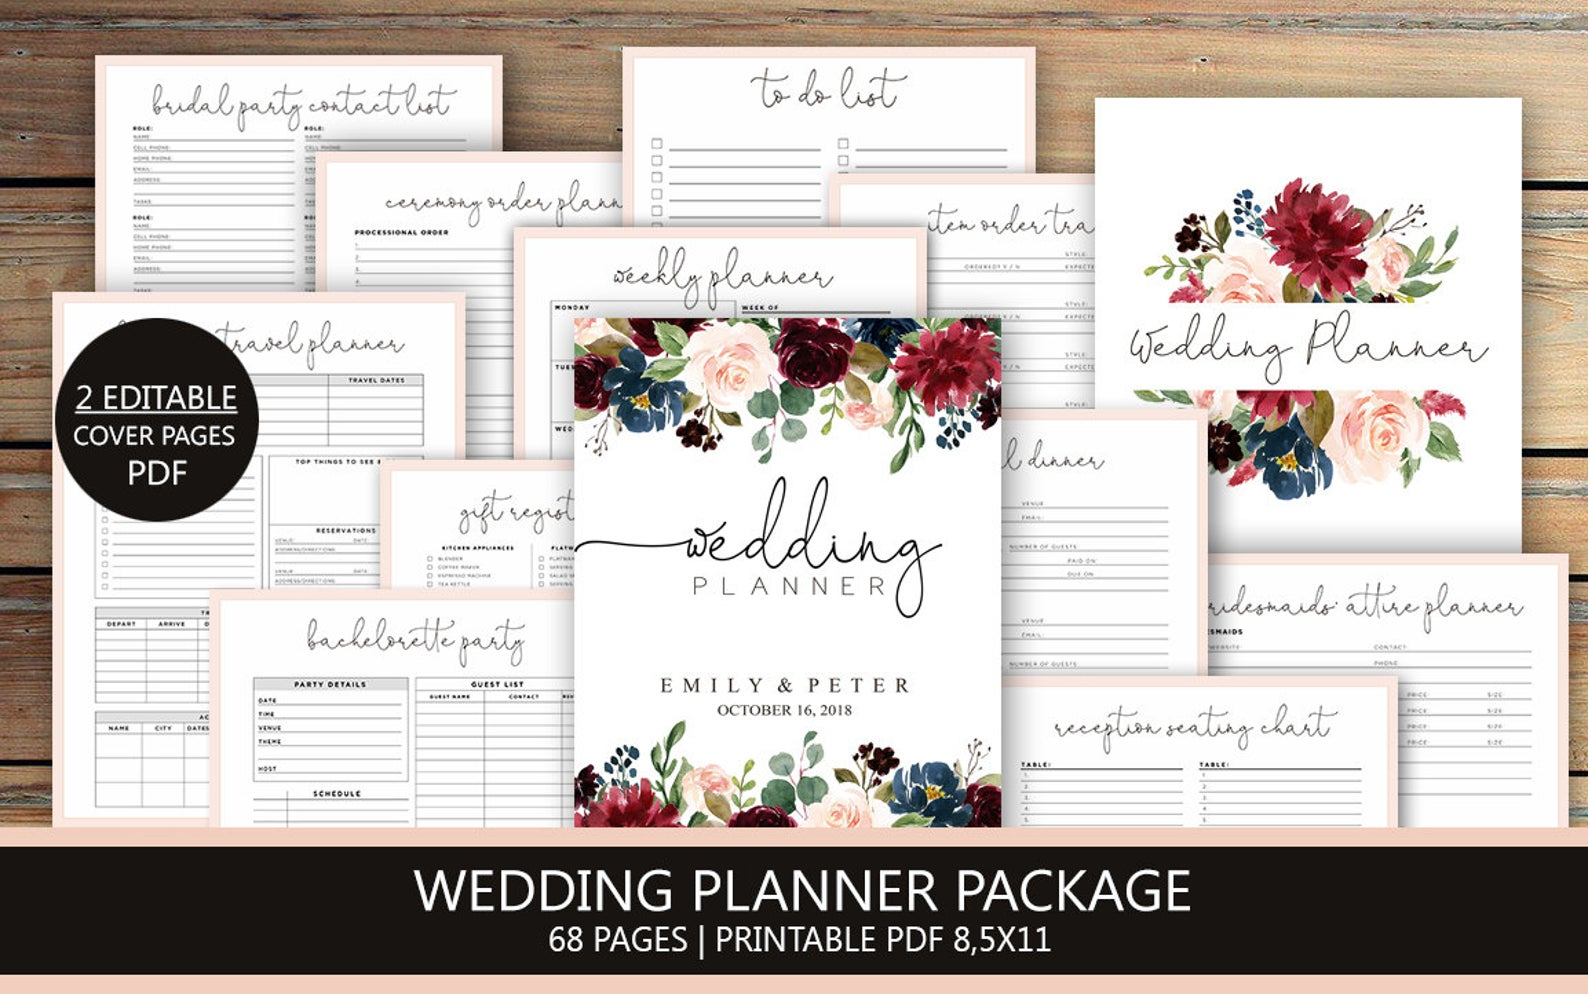 Rustic Wedding Planner - Customizable Wedding Planner - Printable Wedding Planner